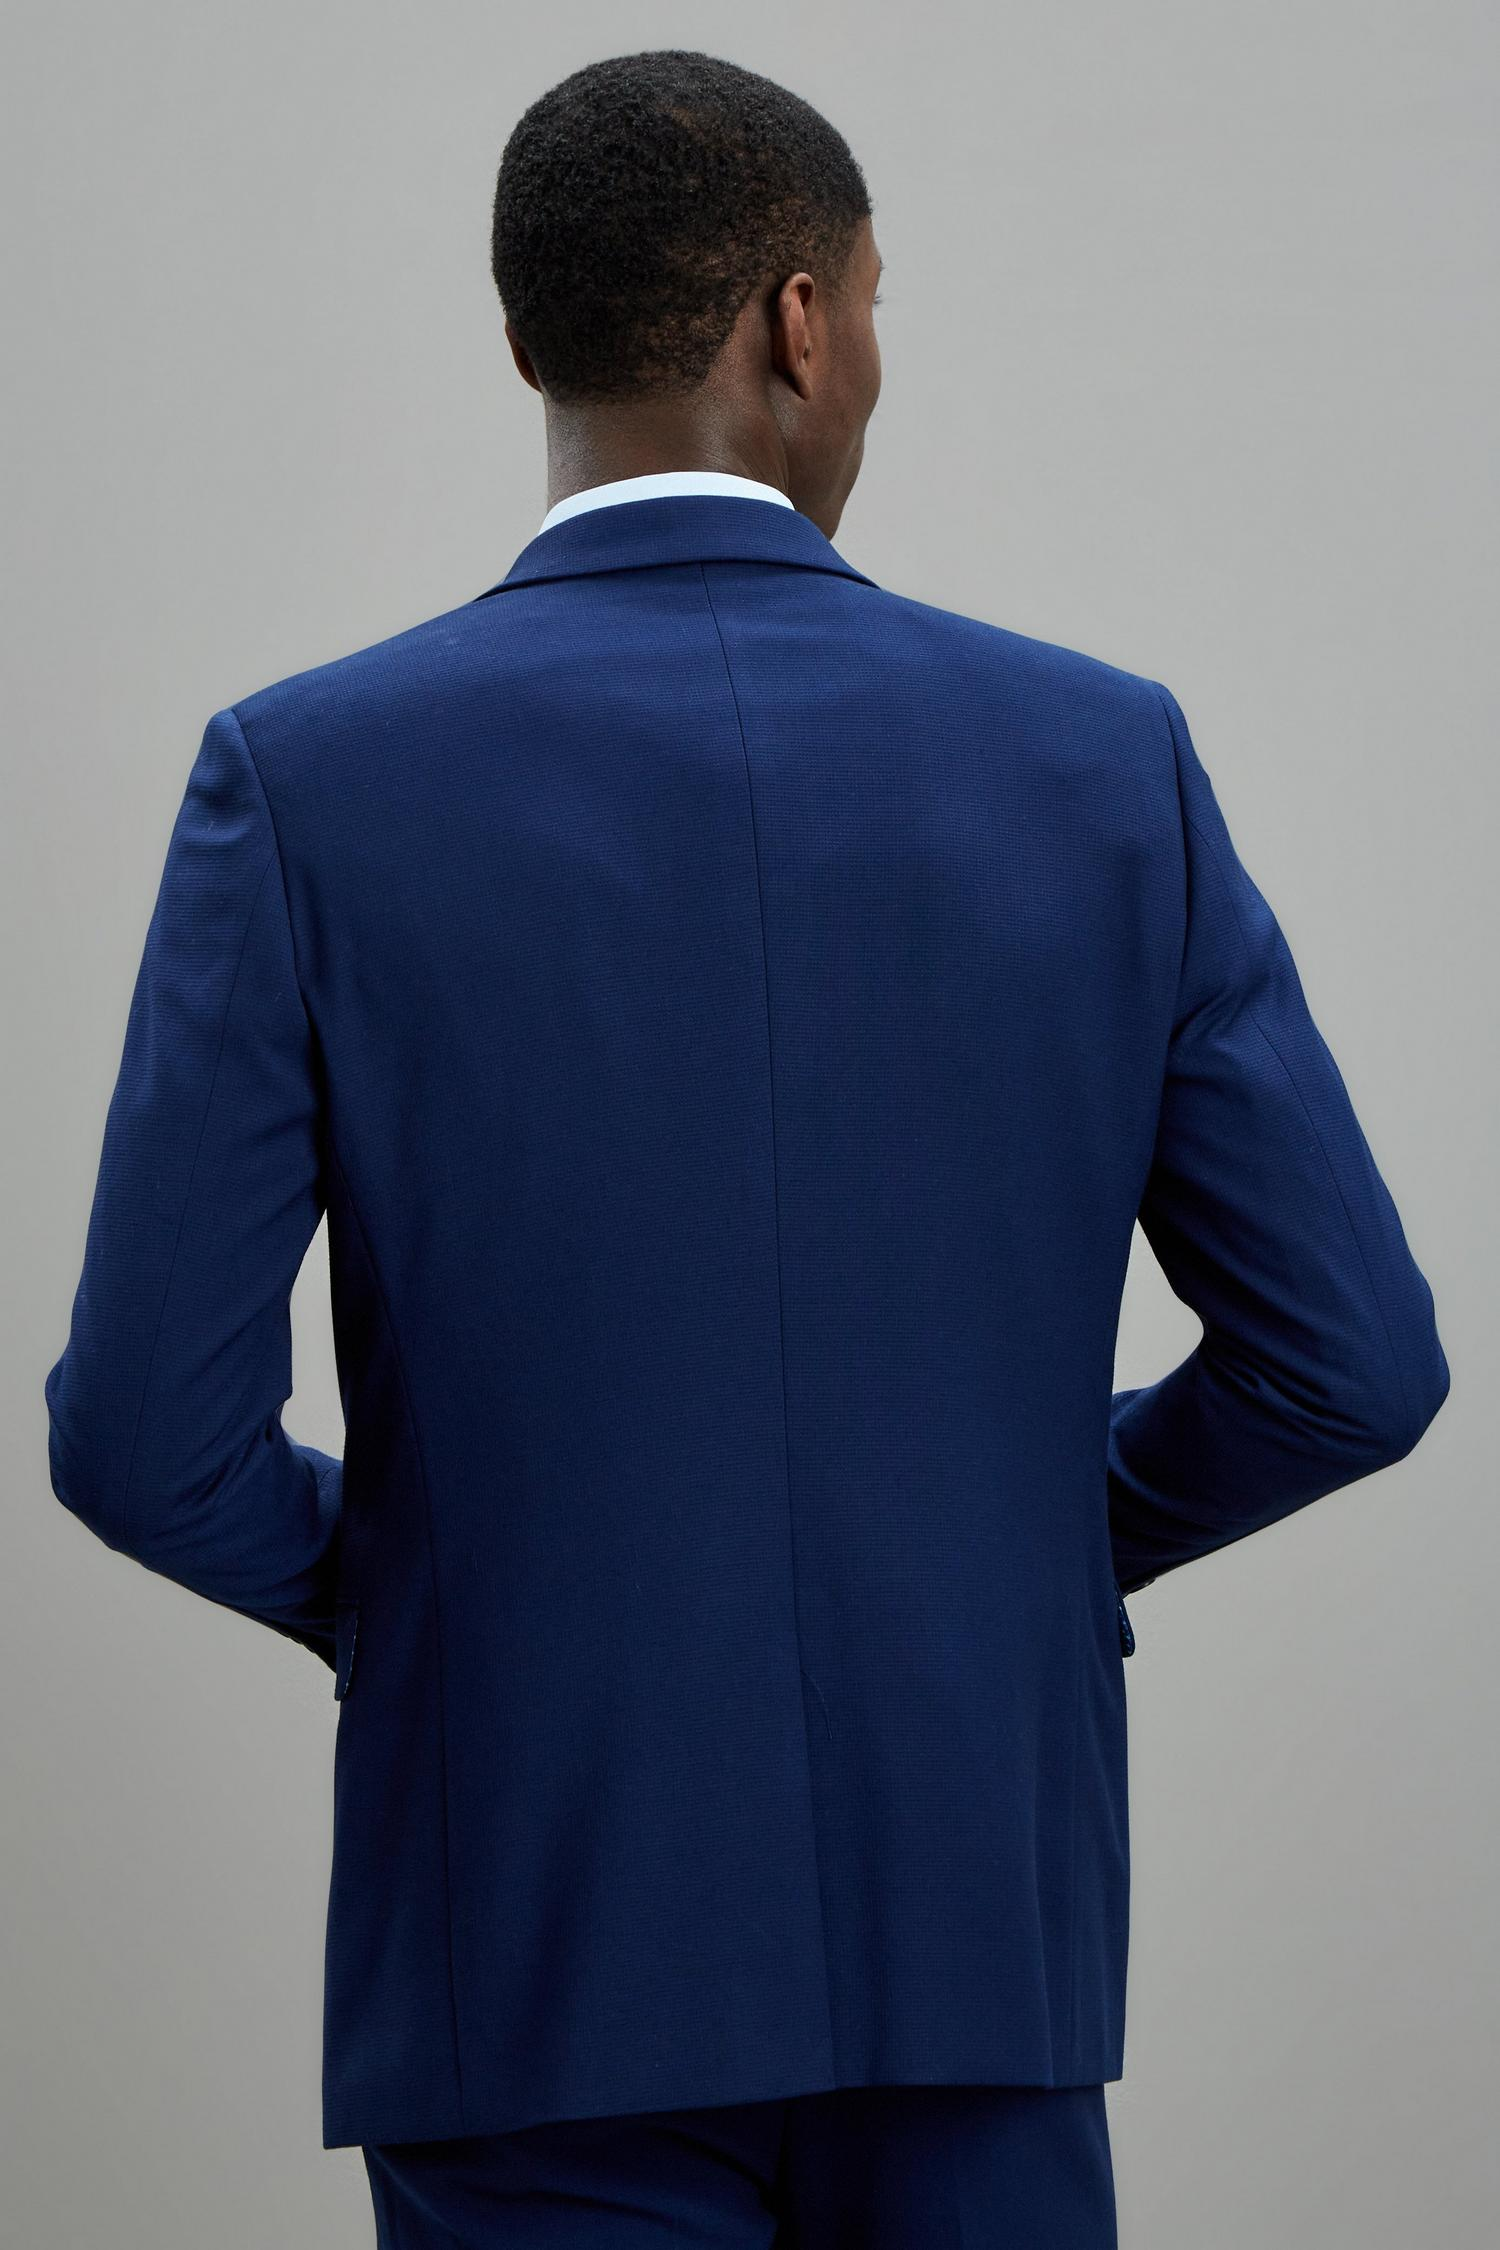 148 Blue Texture Skinny Fit Suit Jacket image number 3